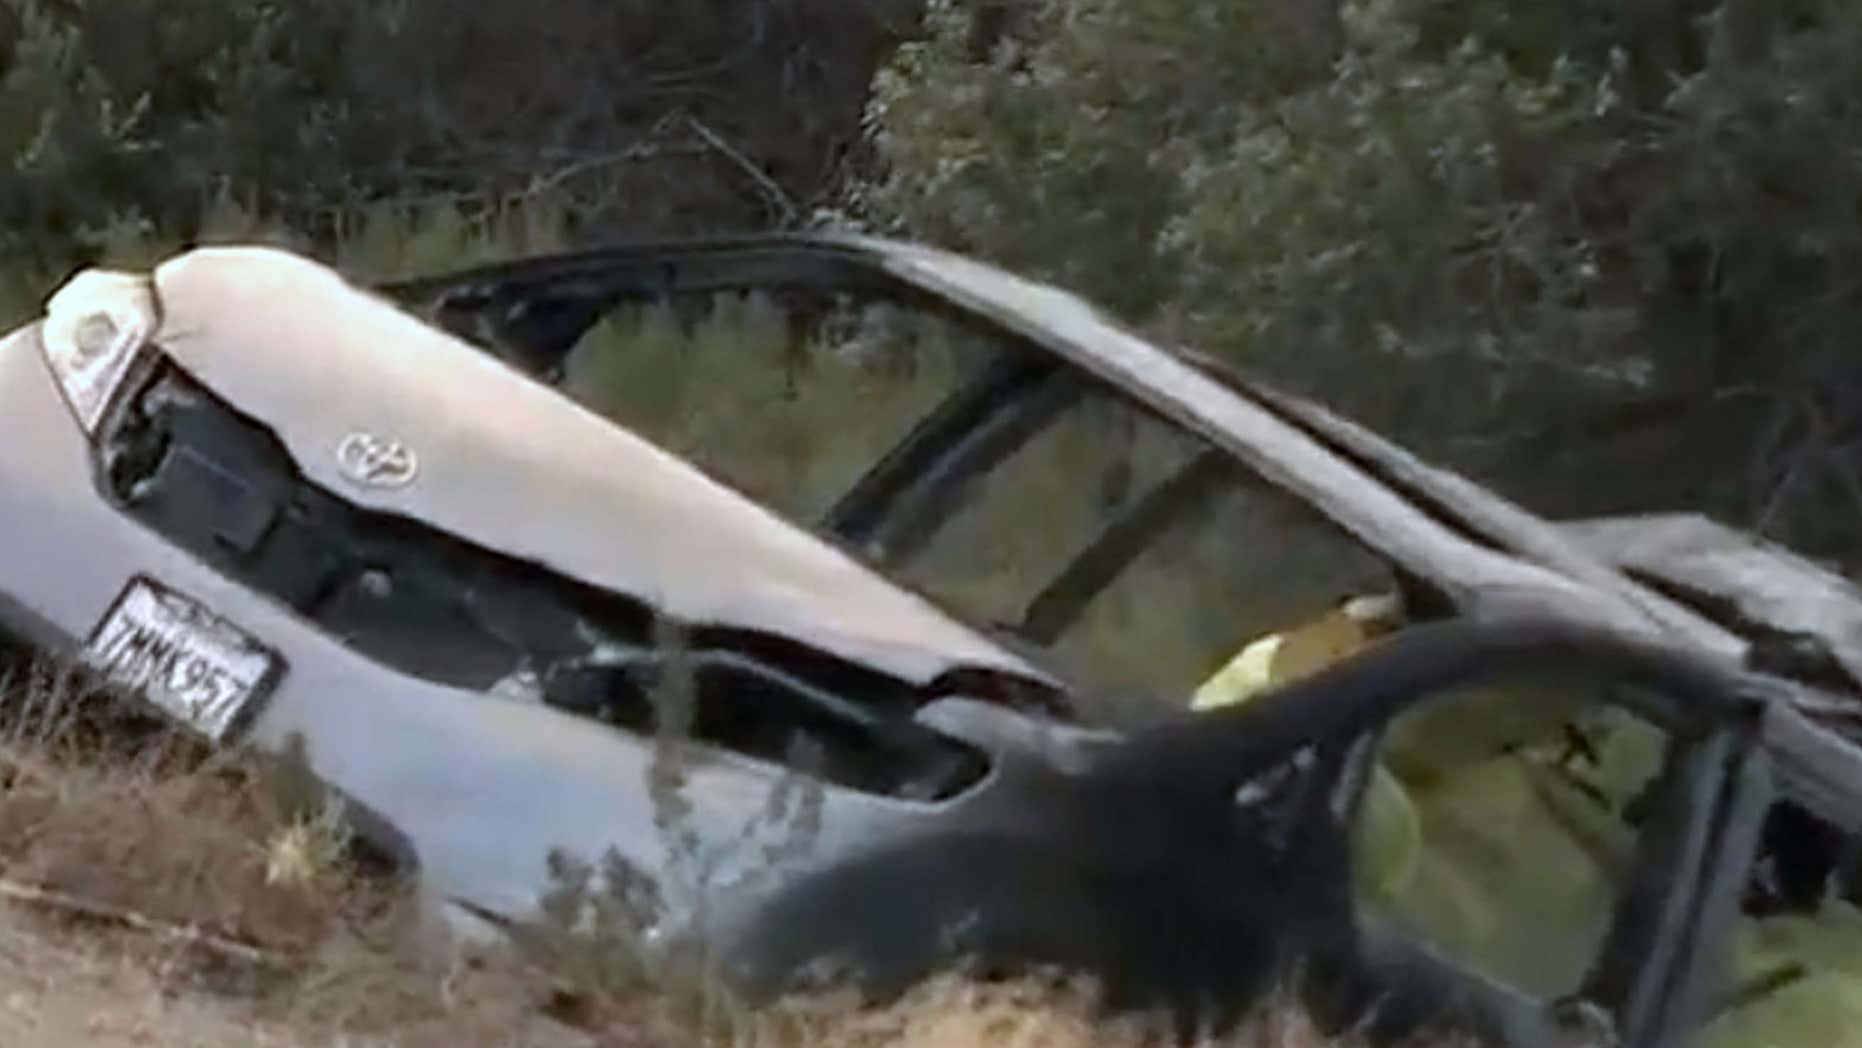 June 28, 2016: In this image made from video, a minivan burned on the side of Interstate 5, near the community of Gorman in Tejon Pass, about 65 miles north of downtown Los Angeles.